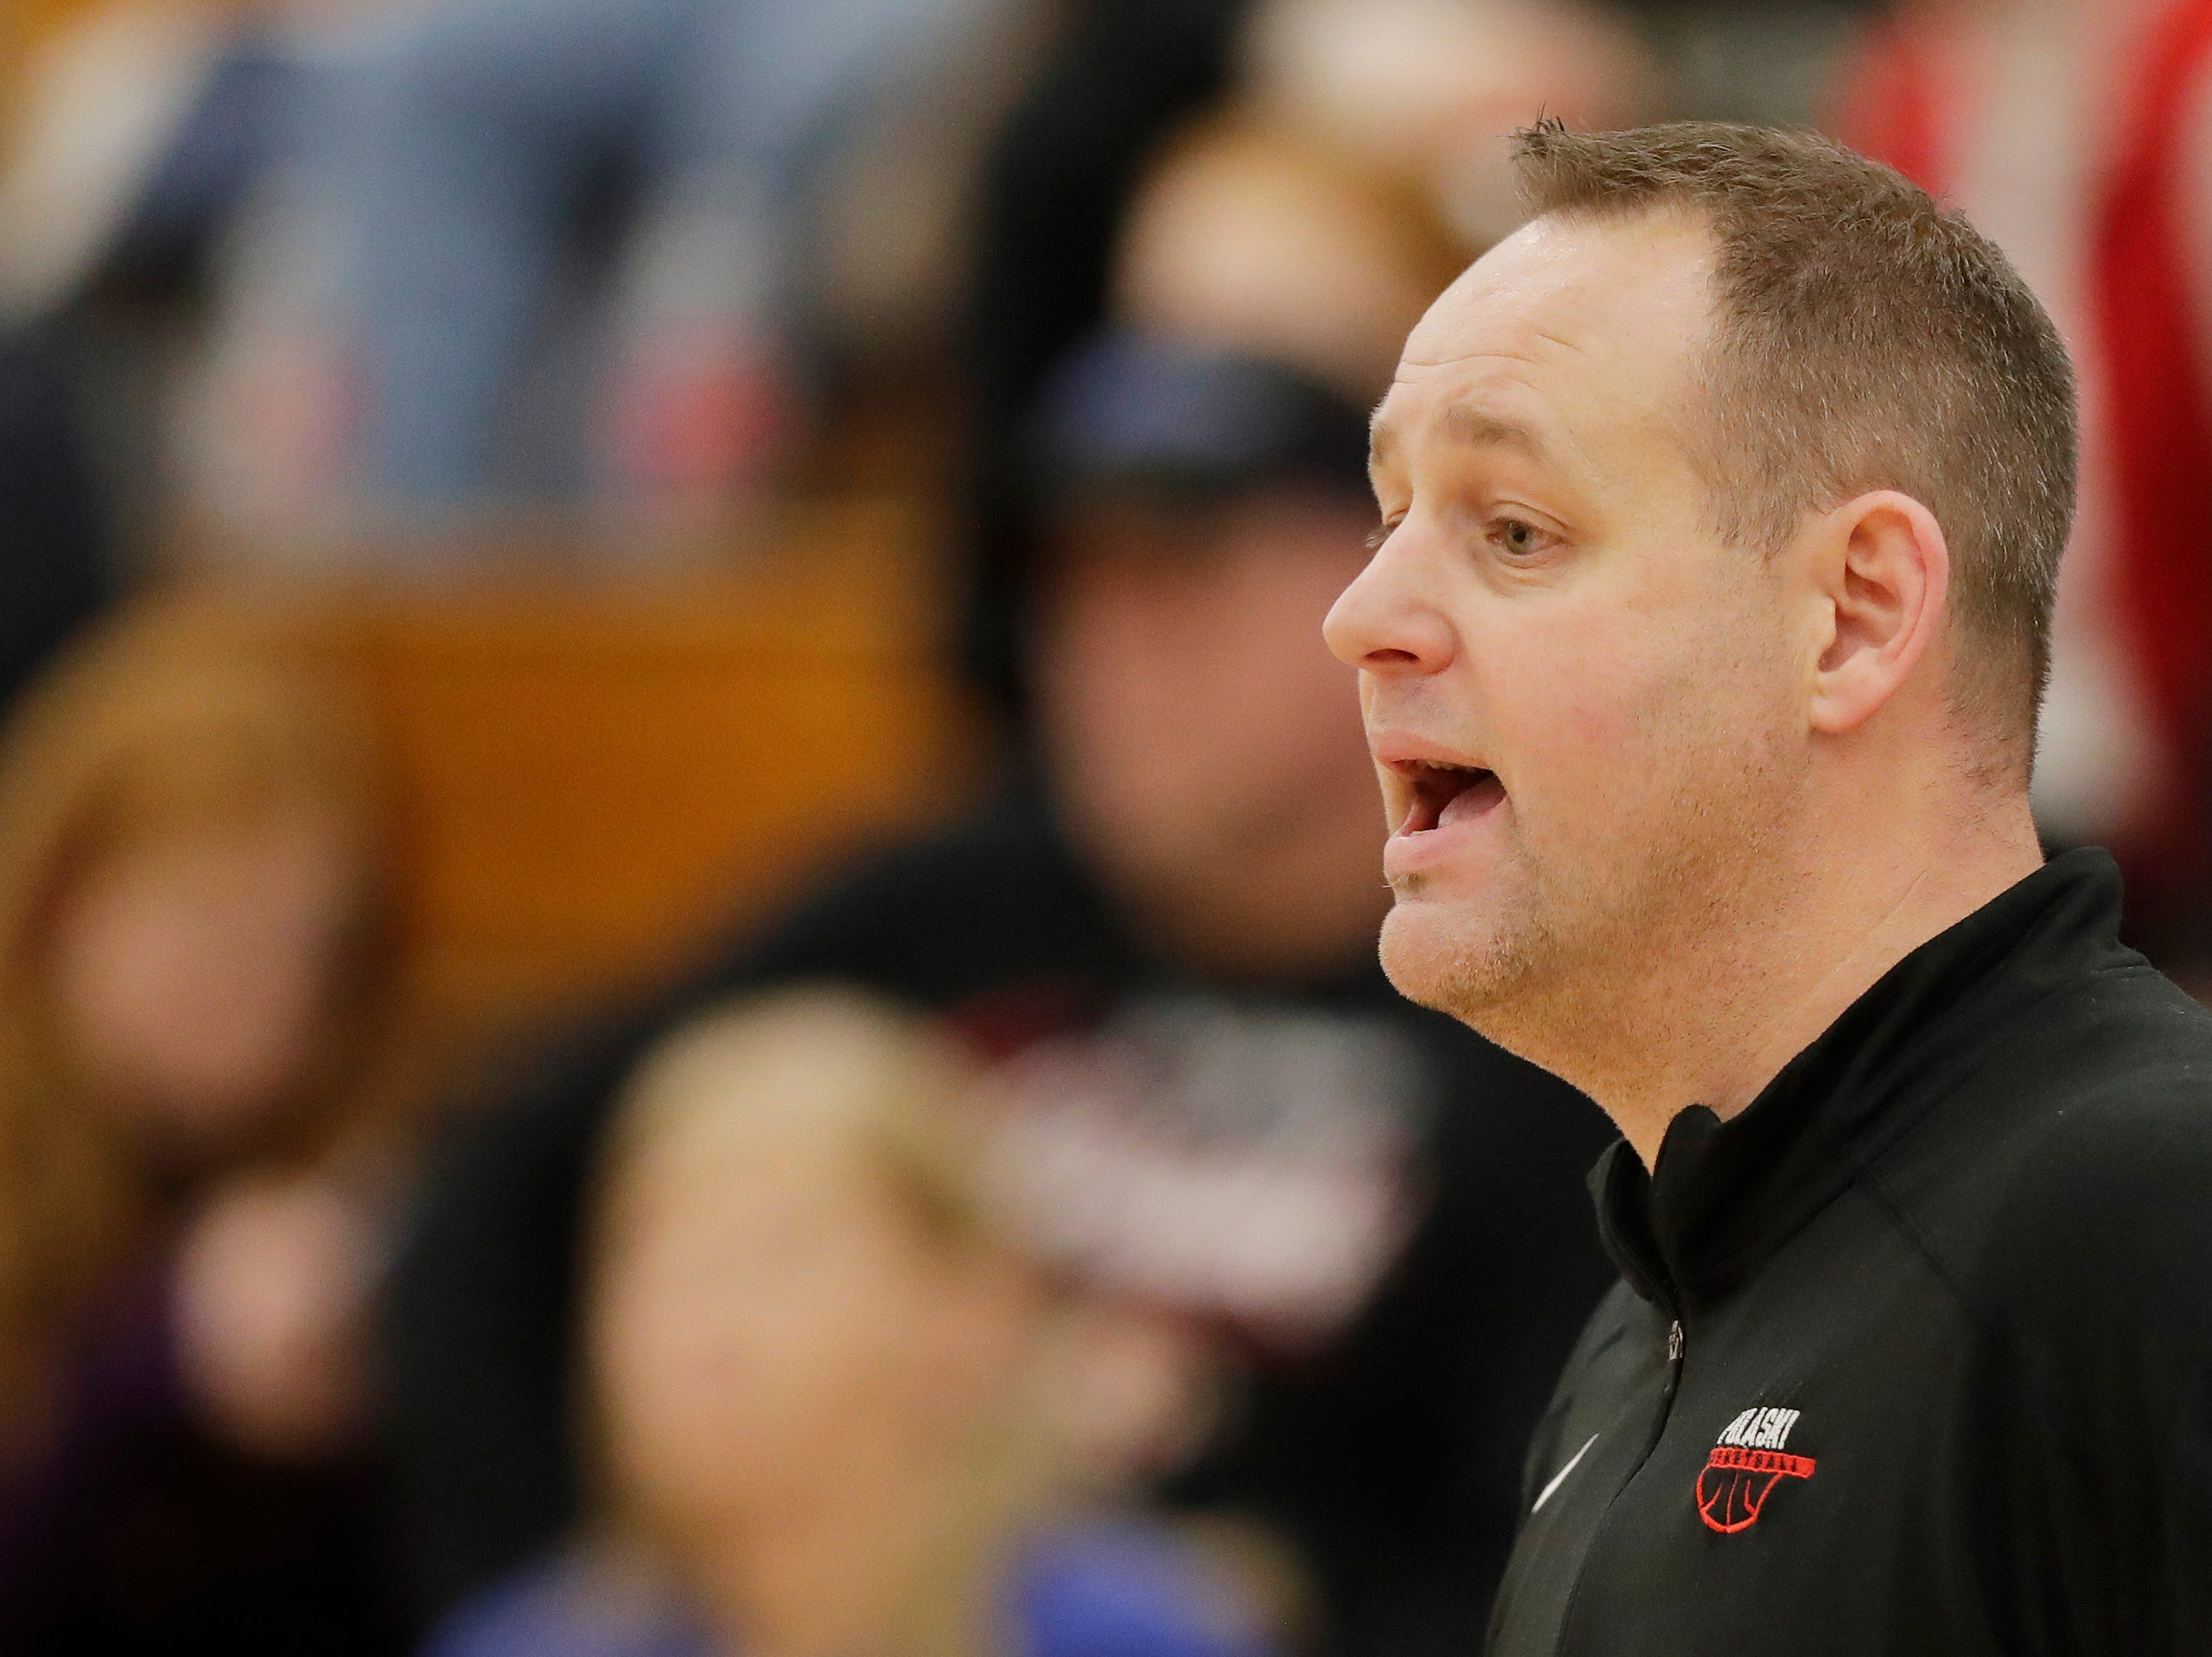 Pulaski's head coach Jeff Charney during a game against Bay Port at Pulaski high school on Friday, January 4, 2019 in Pulaski, Wis.